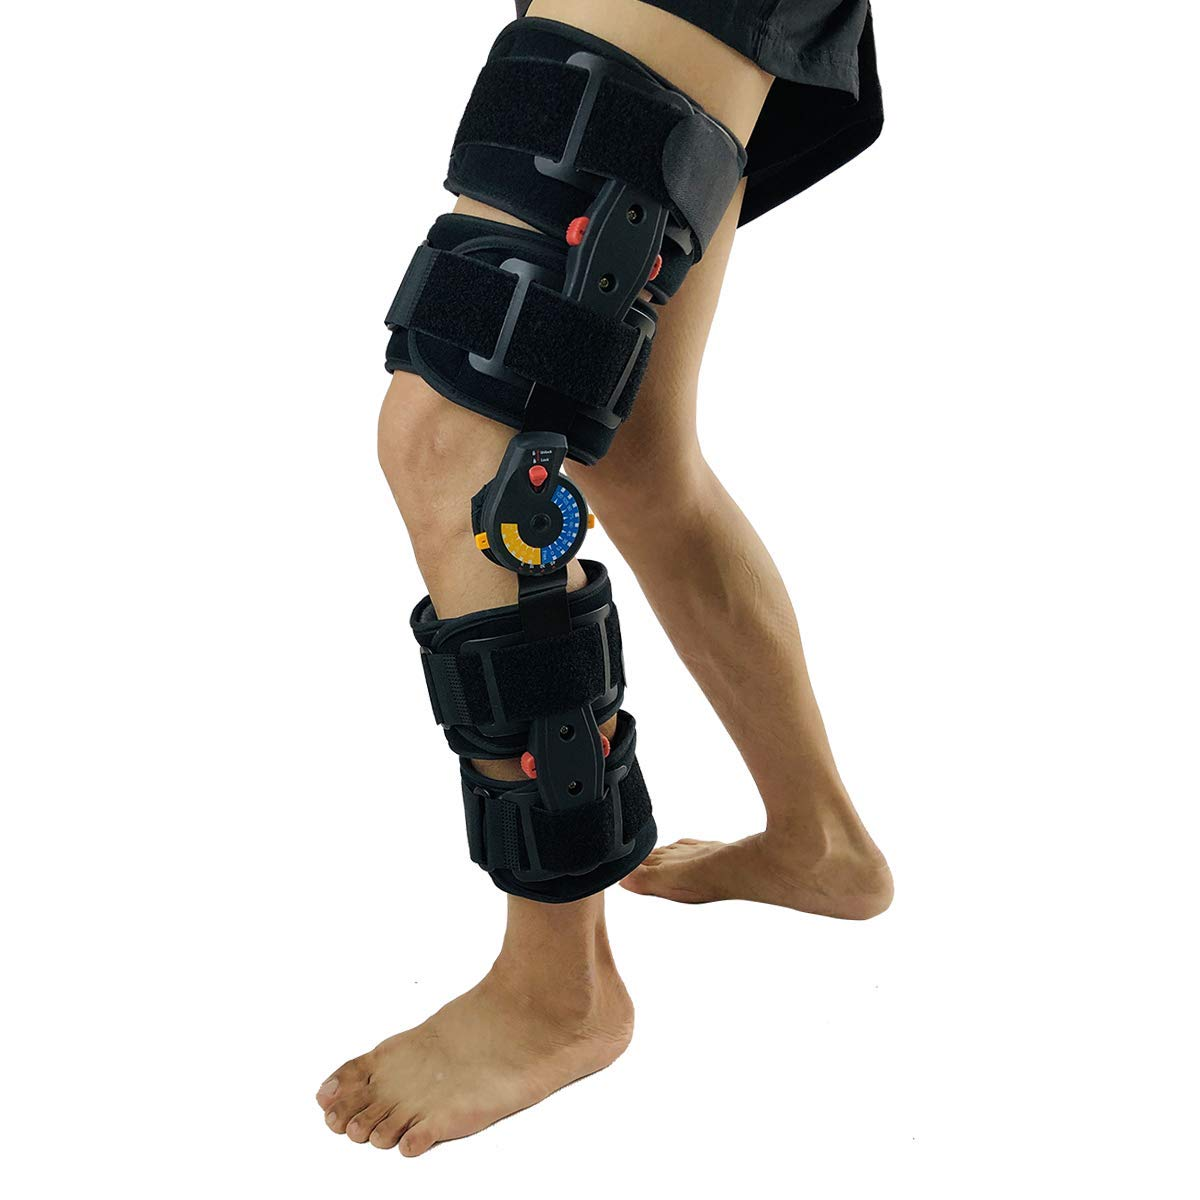 Orthomen Post Op Knee Brace After Surgery, Adjustable Medical Orthopedic Support Stabilizer, Hinged ROM Knee Brace for Recovery Stabilization, Size: Universal Standard